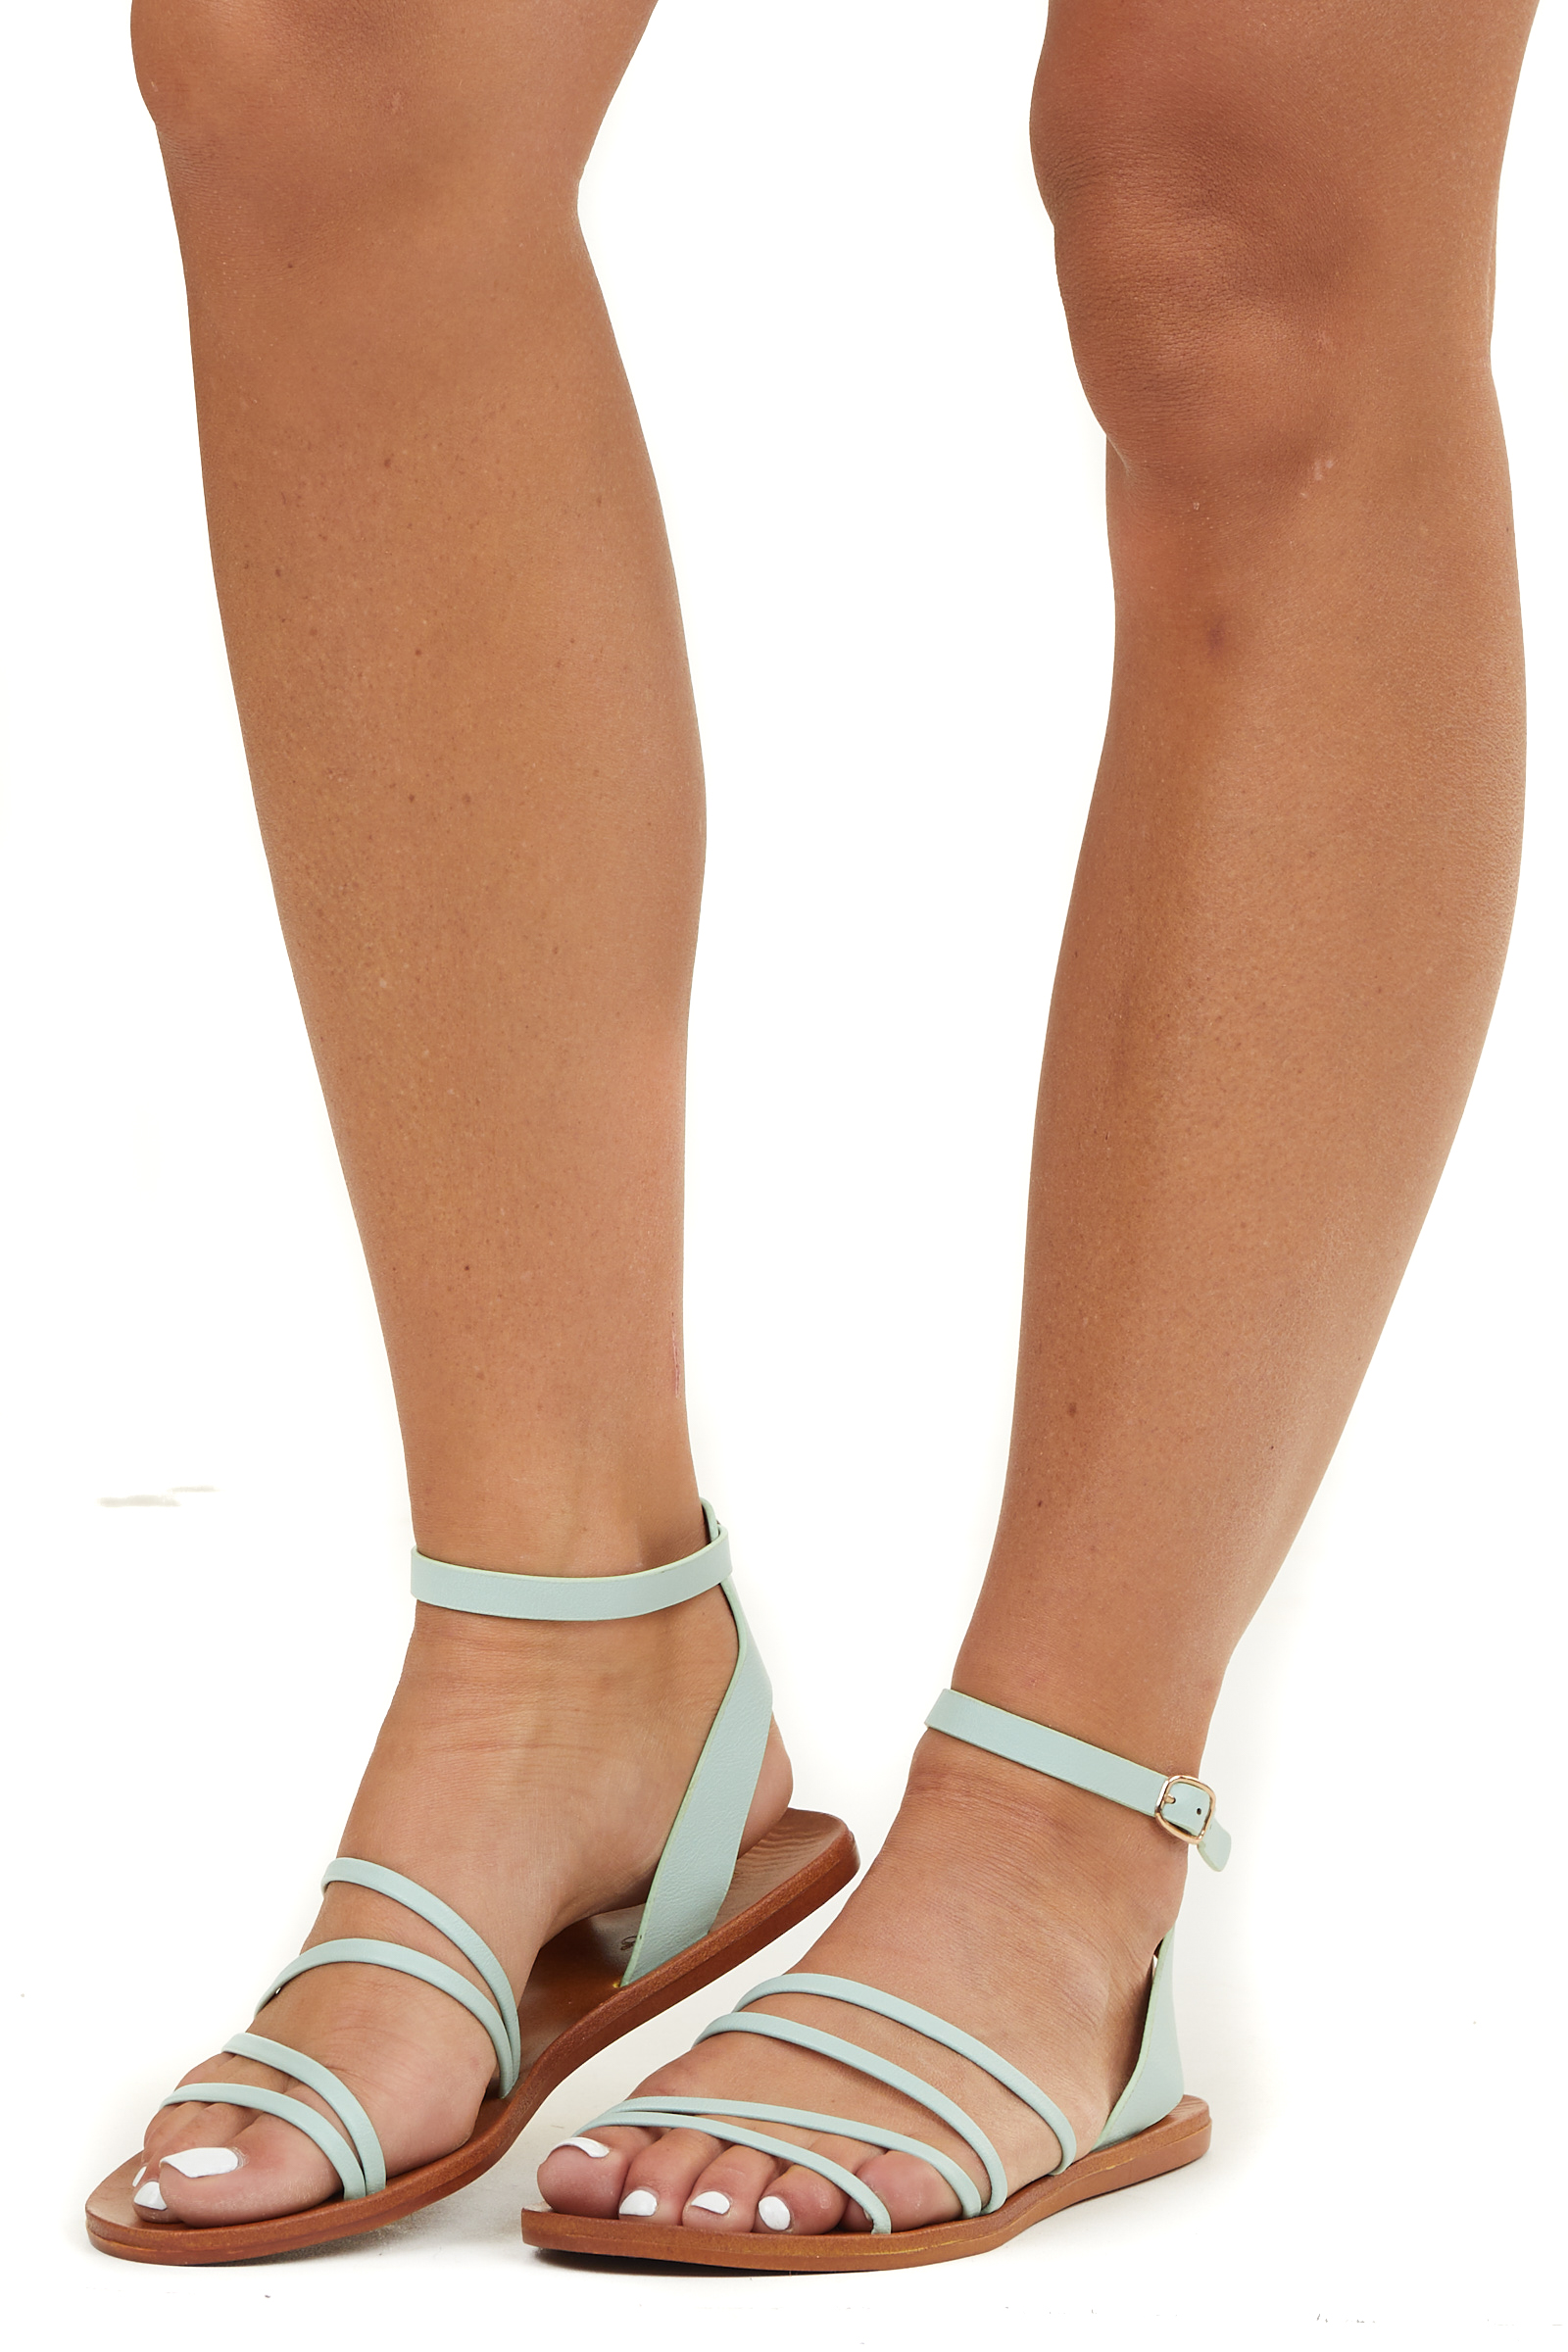 Mint Faux Leather Strappy Sandal with Buckle Closure